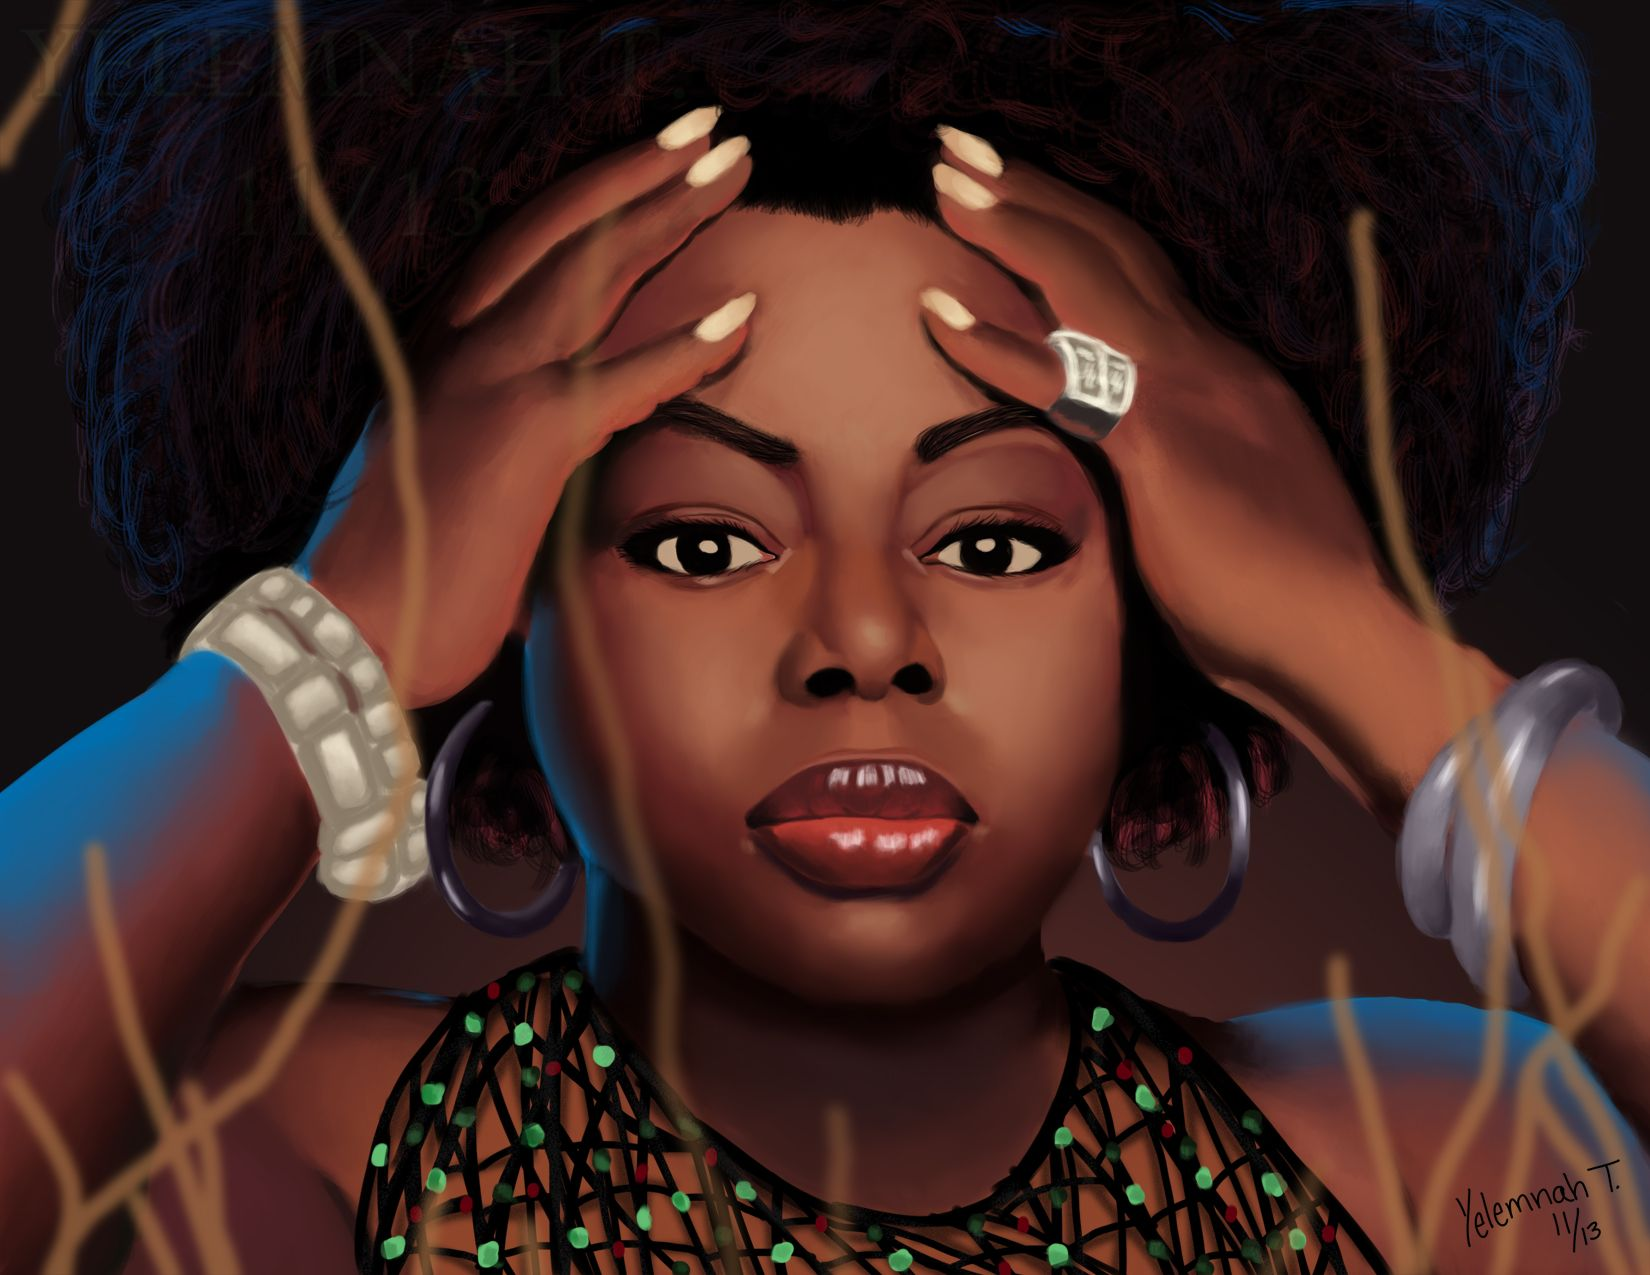 Angie Stone by Yelemanh Tessema, Digital 28 x 22 in., 2013